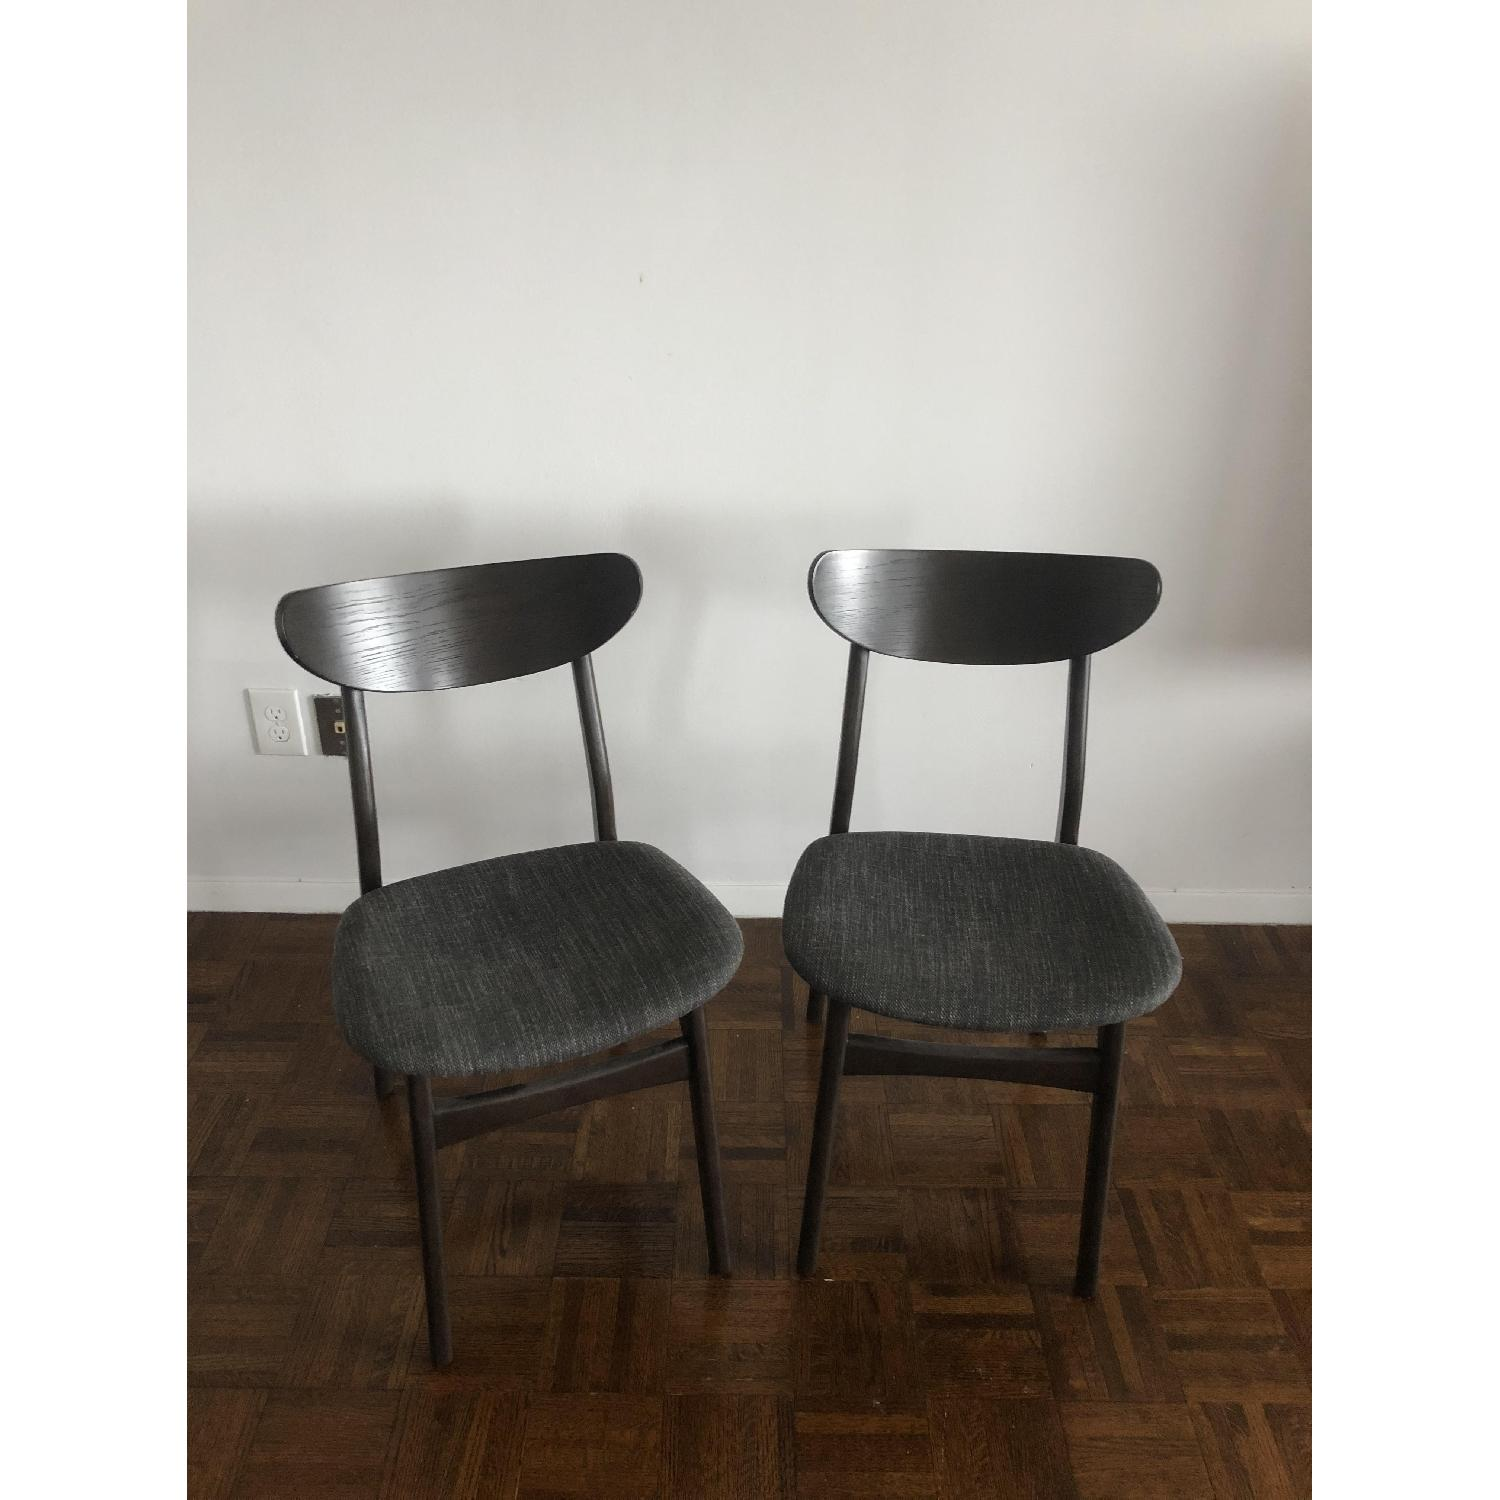 West Elm Classic Cafe Dining Chairs In Charcoal AptDeco - West elm cafe table